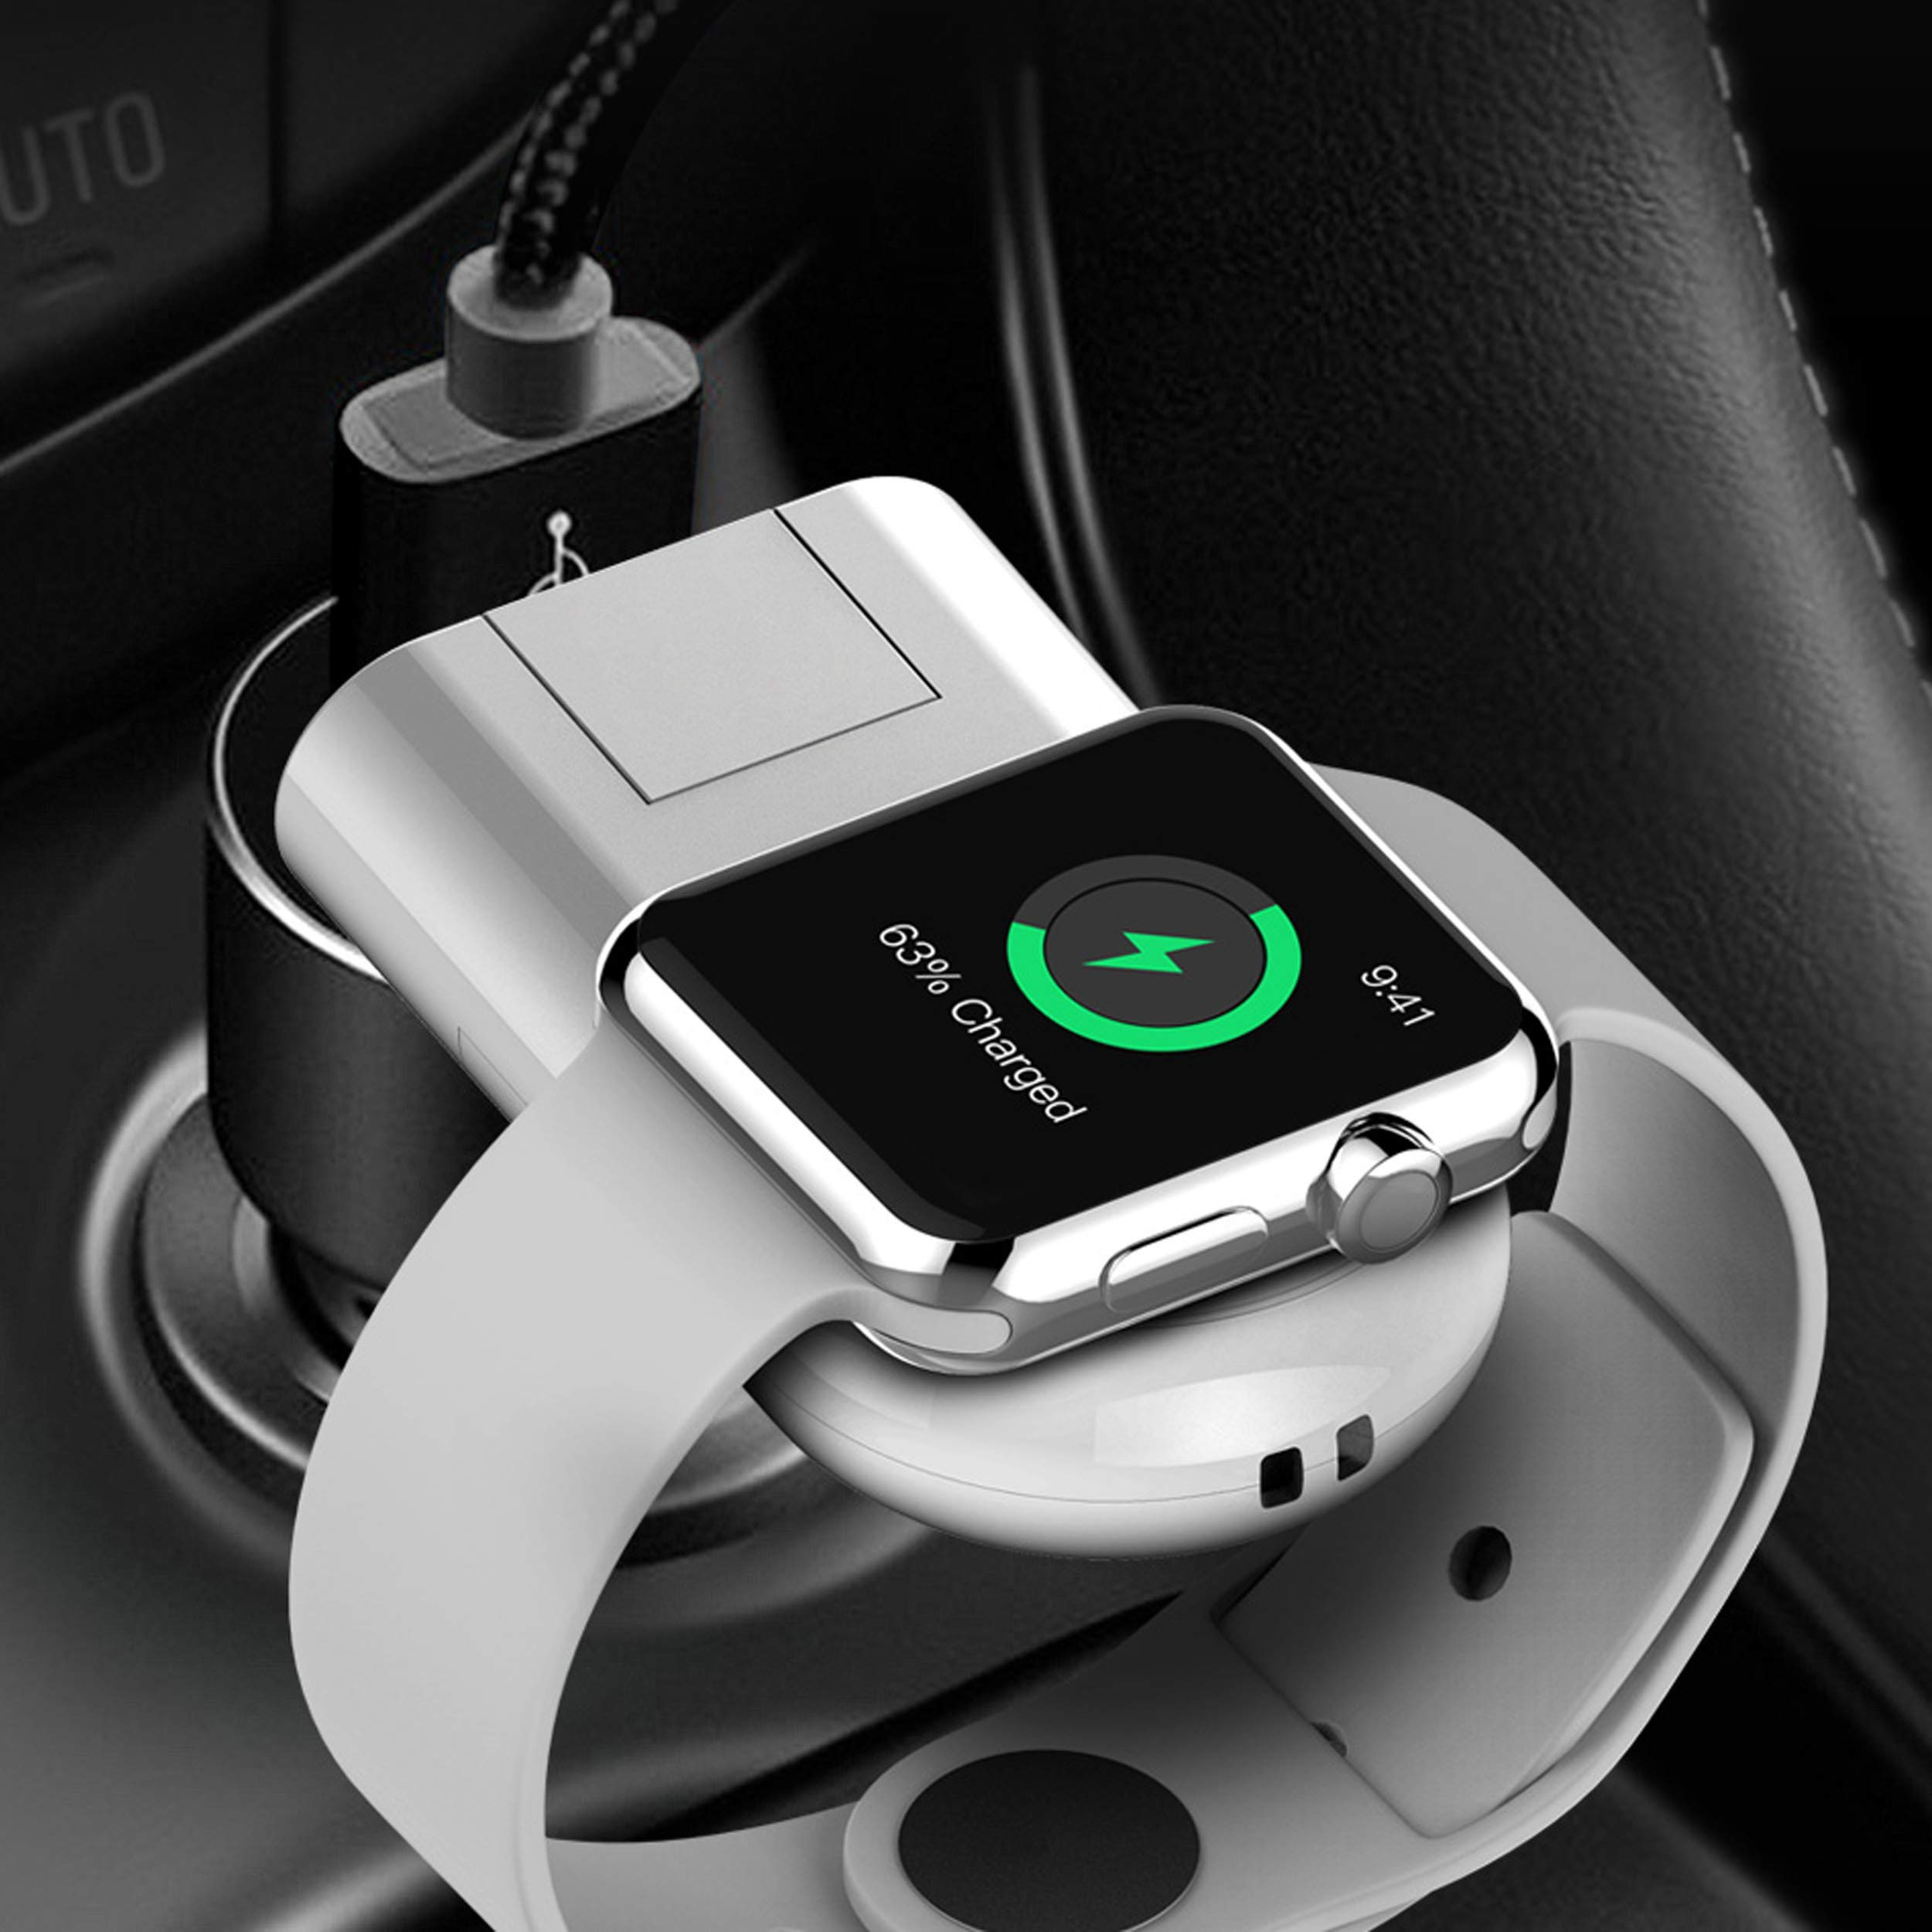 Bysionics for Apple Watch Wireless Charger, Wireless Charger and Wireless Magnetic Charging Dock Holder USB Charging Compatible for Apple Watch Series 4/3/2/1 White by Bysionics